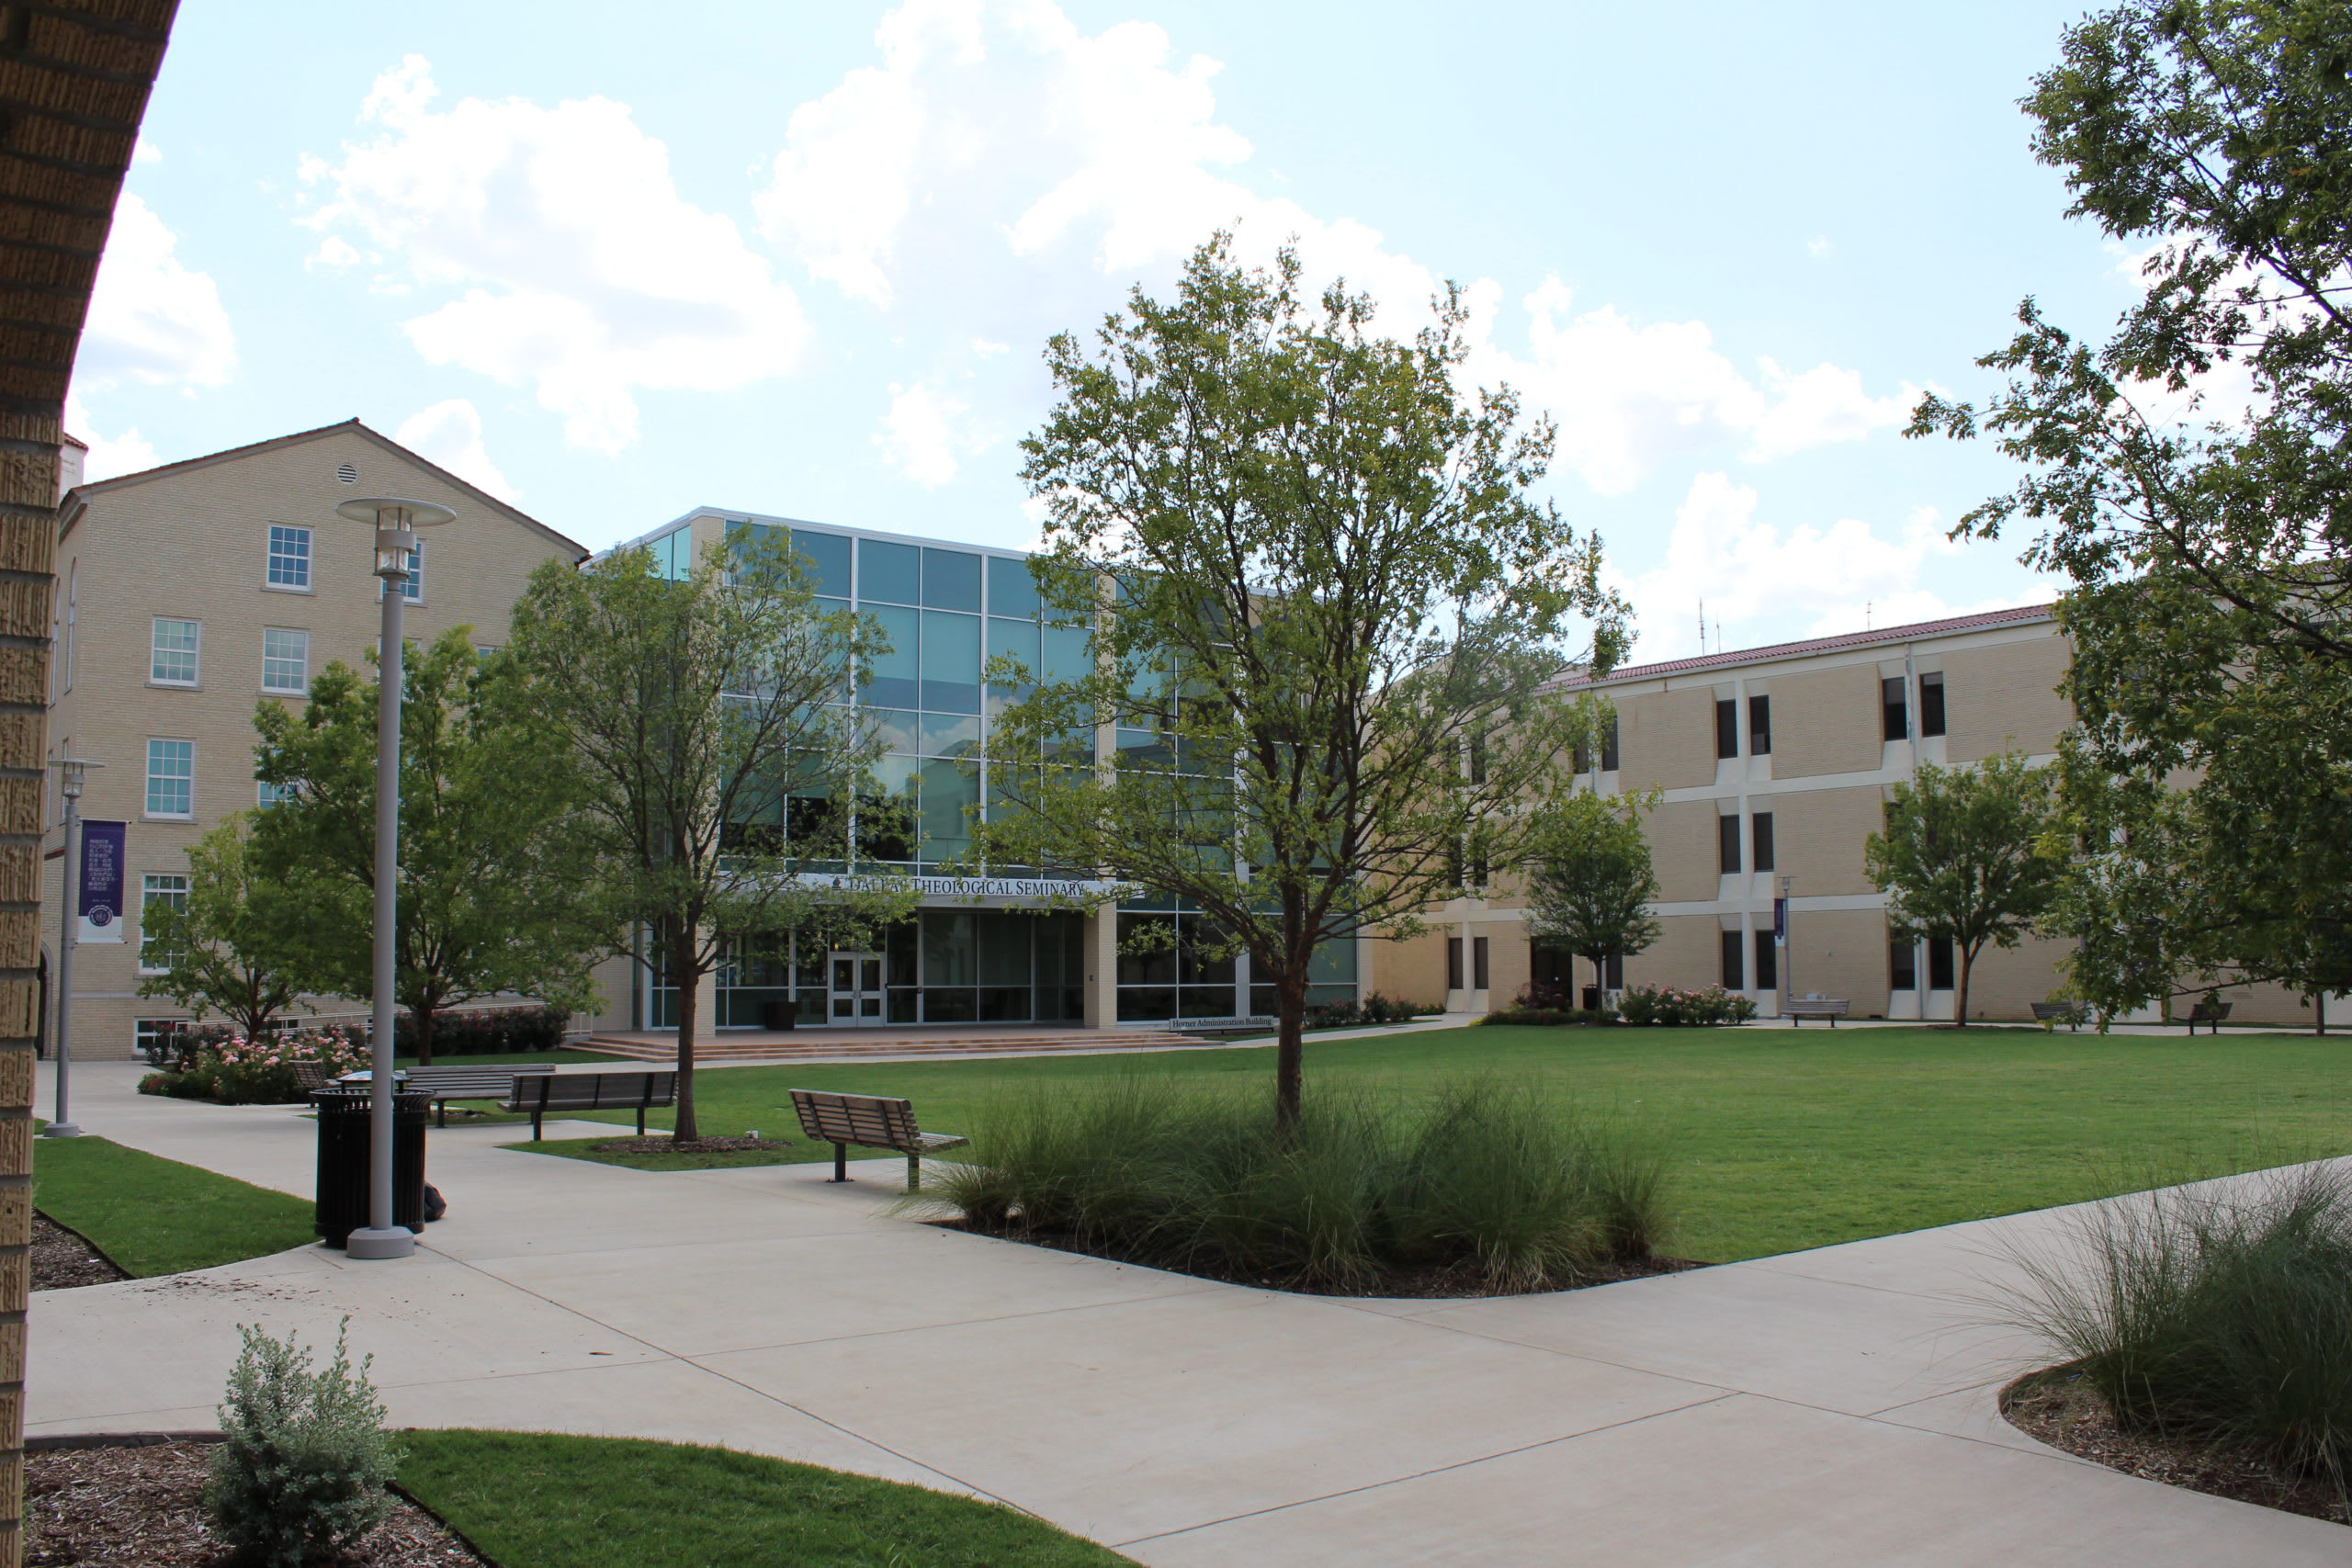 Lawn outside glass-walled entry and steps into Horner Administration Building